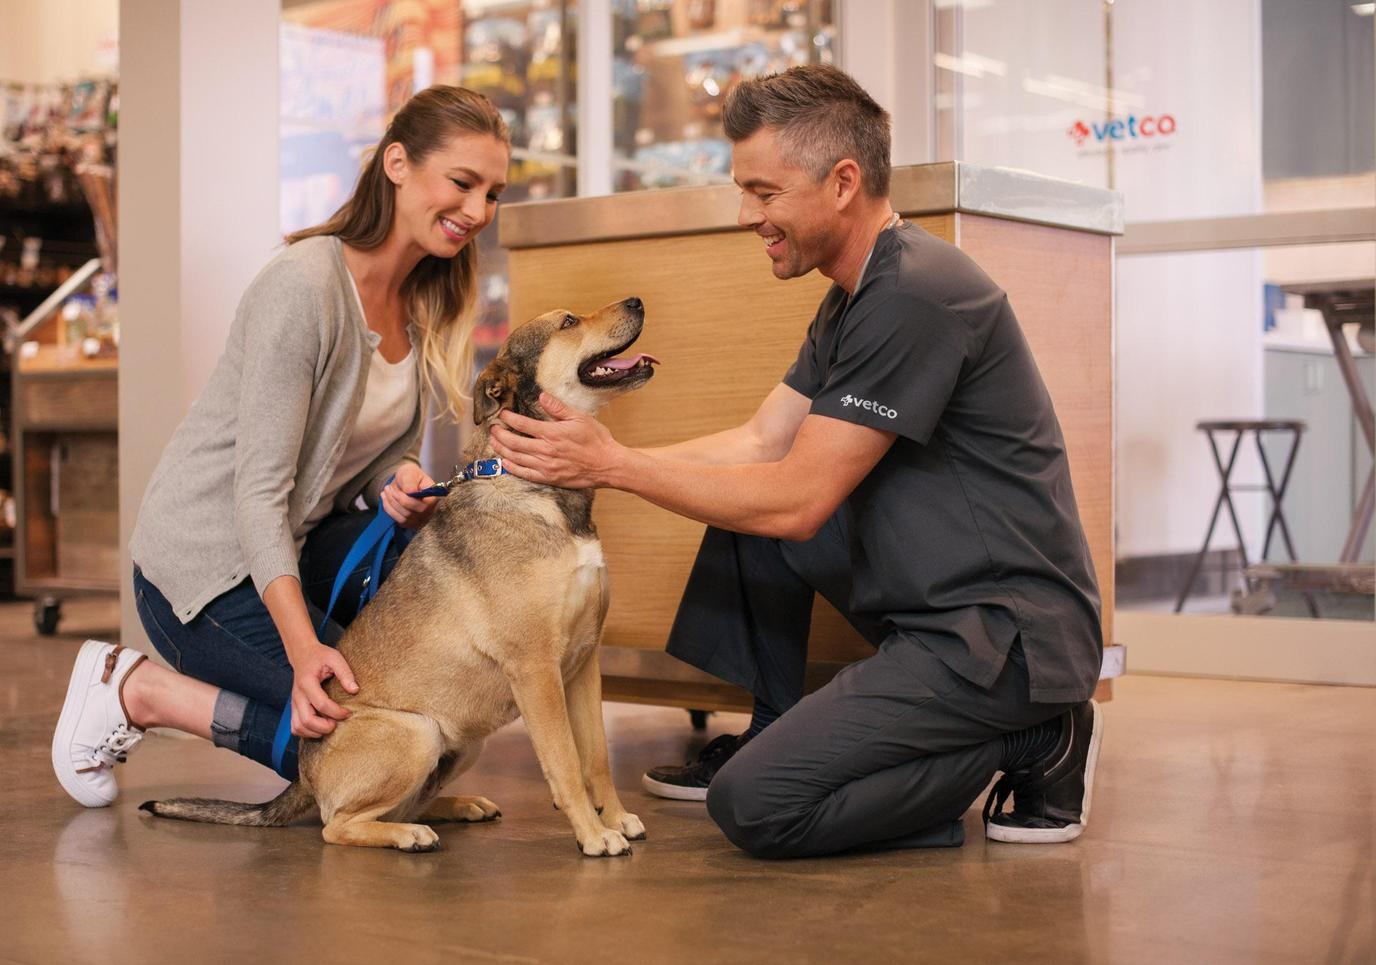 A Petco Associate Greets a Leashed Dog and His Mom Outside of a Vetco Office.